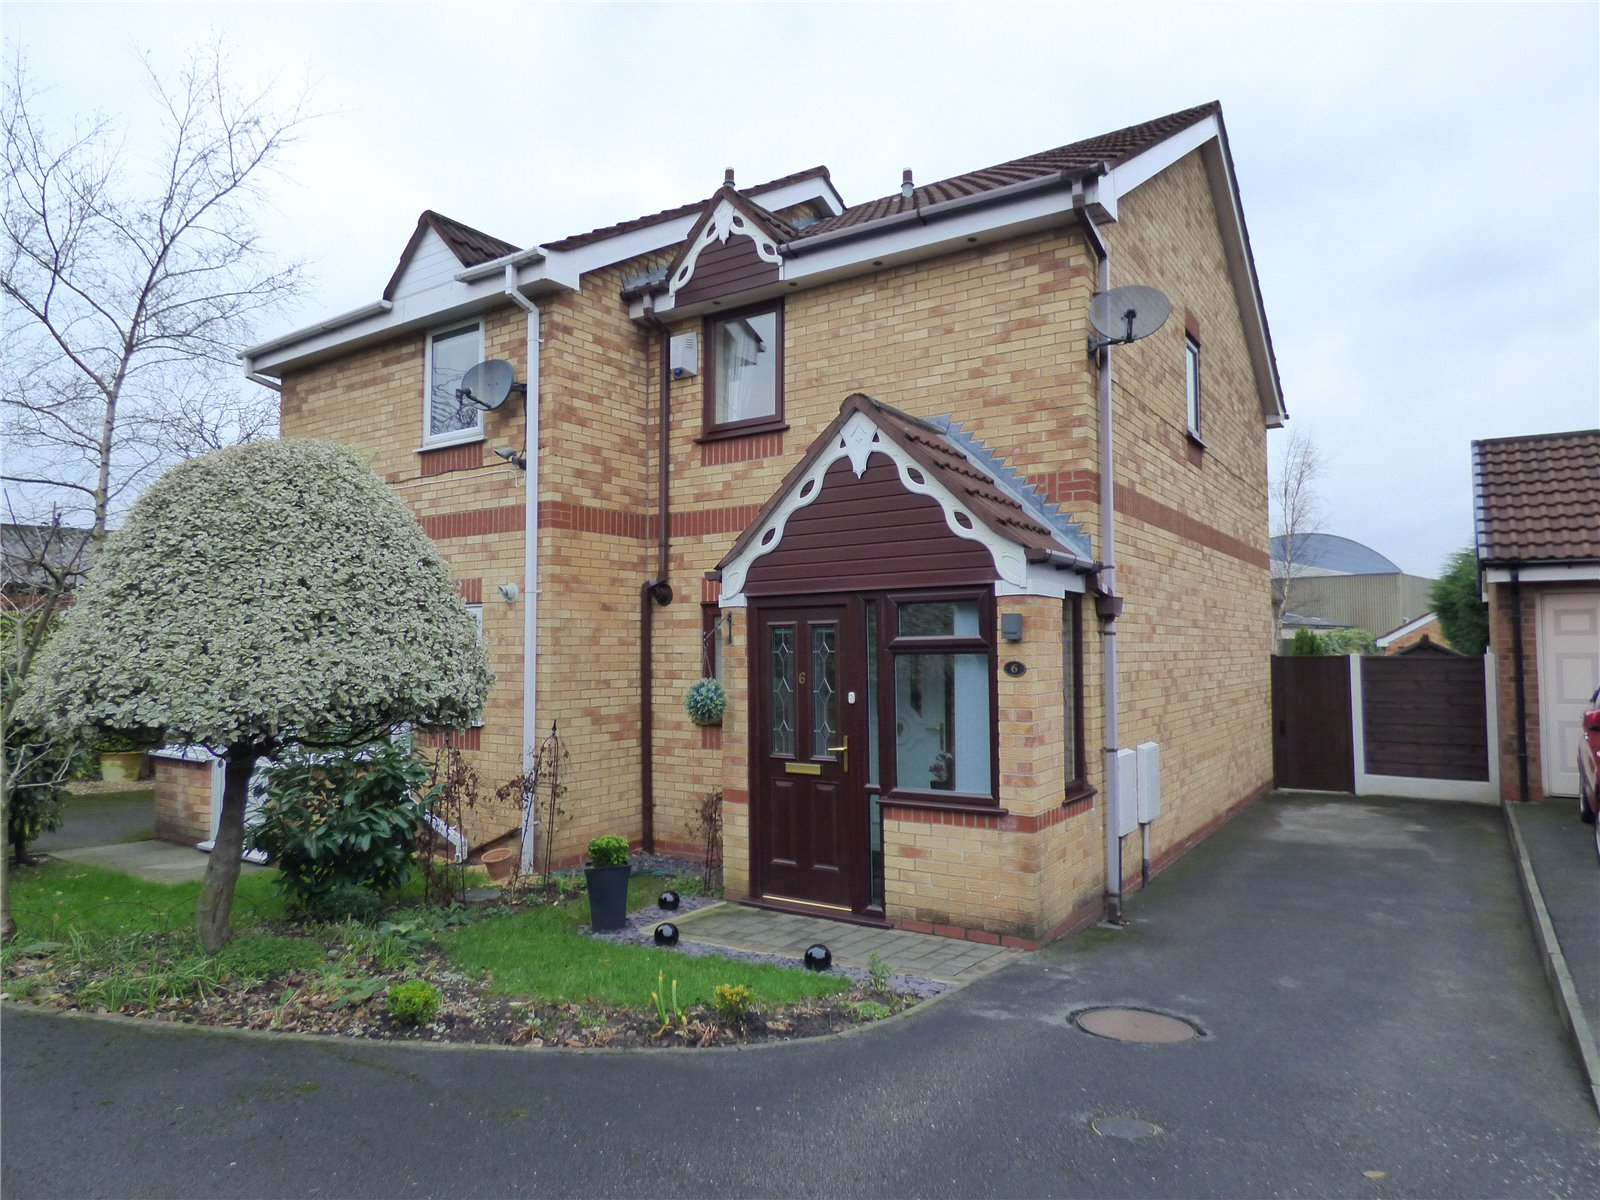 2 Bedrooms Semi Detached House for sale in Dales Brow Avenue, Ashton-under-Lyne, Greater Manchester, OL7